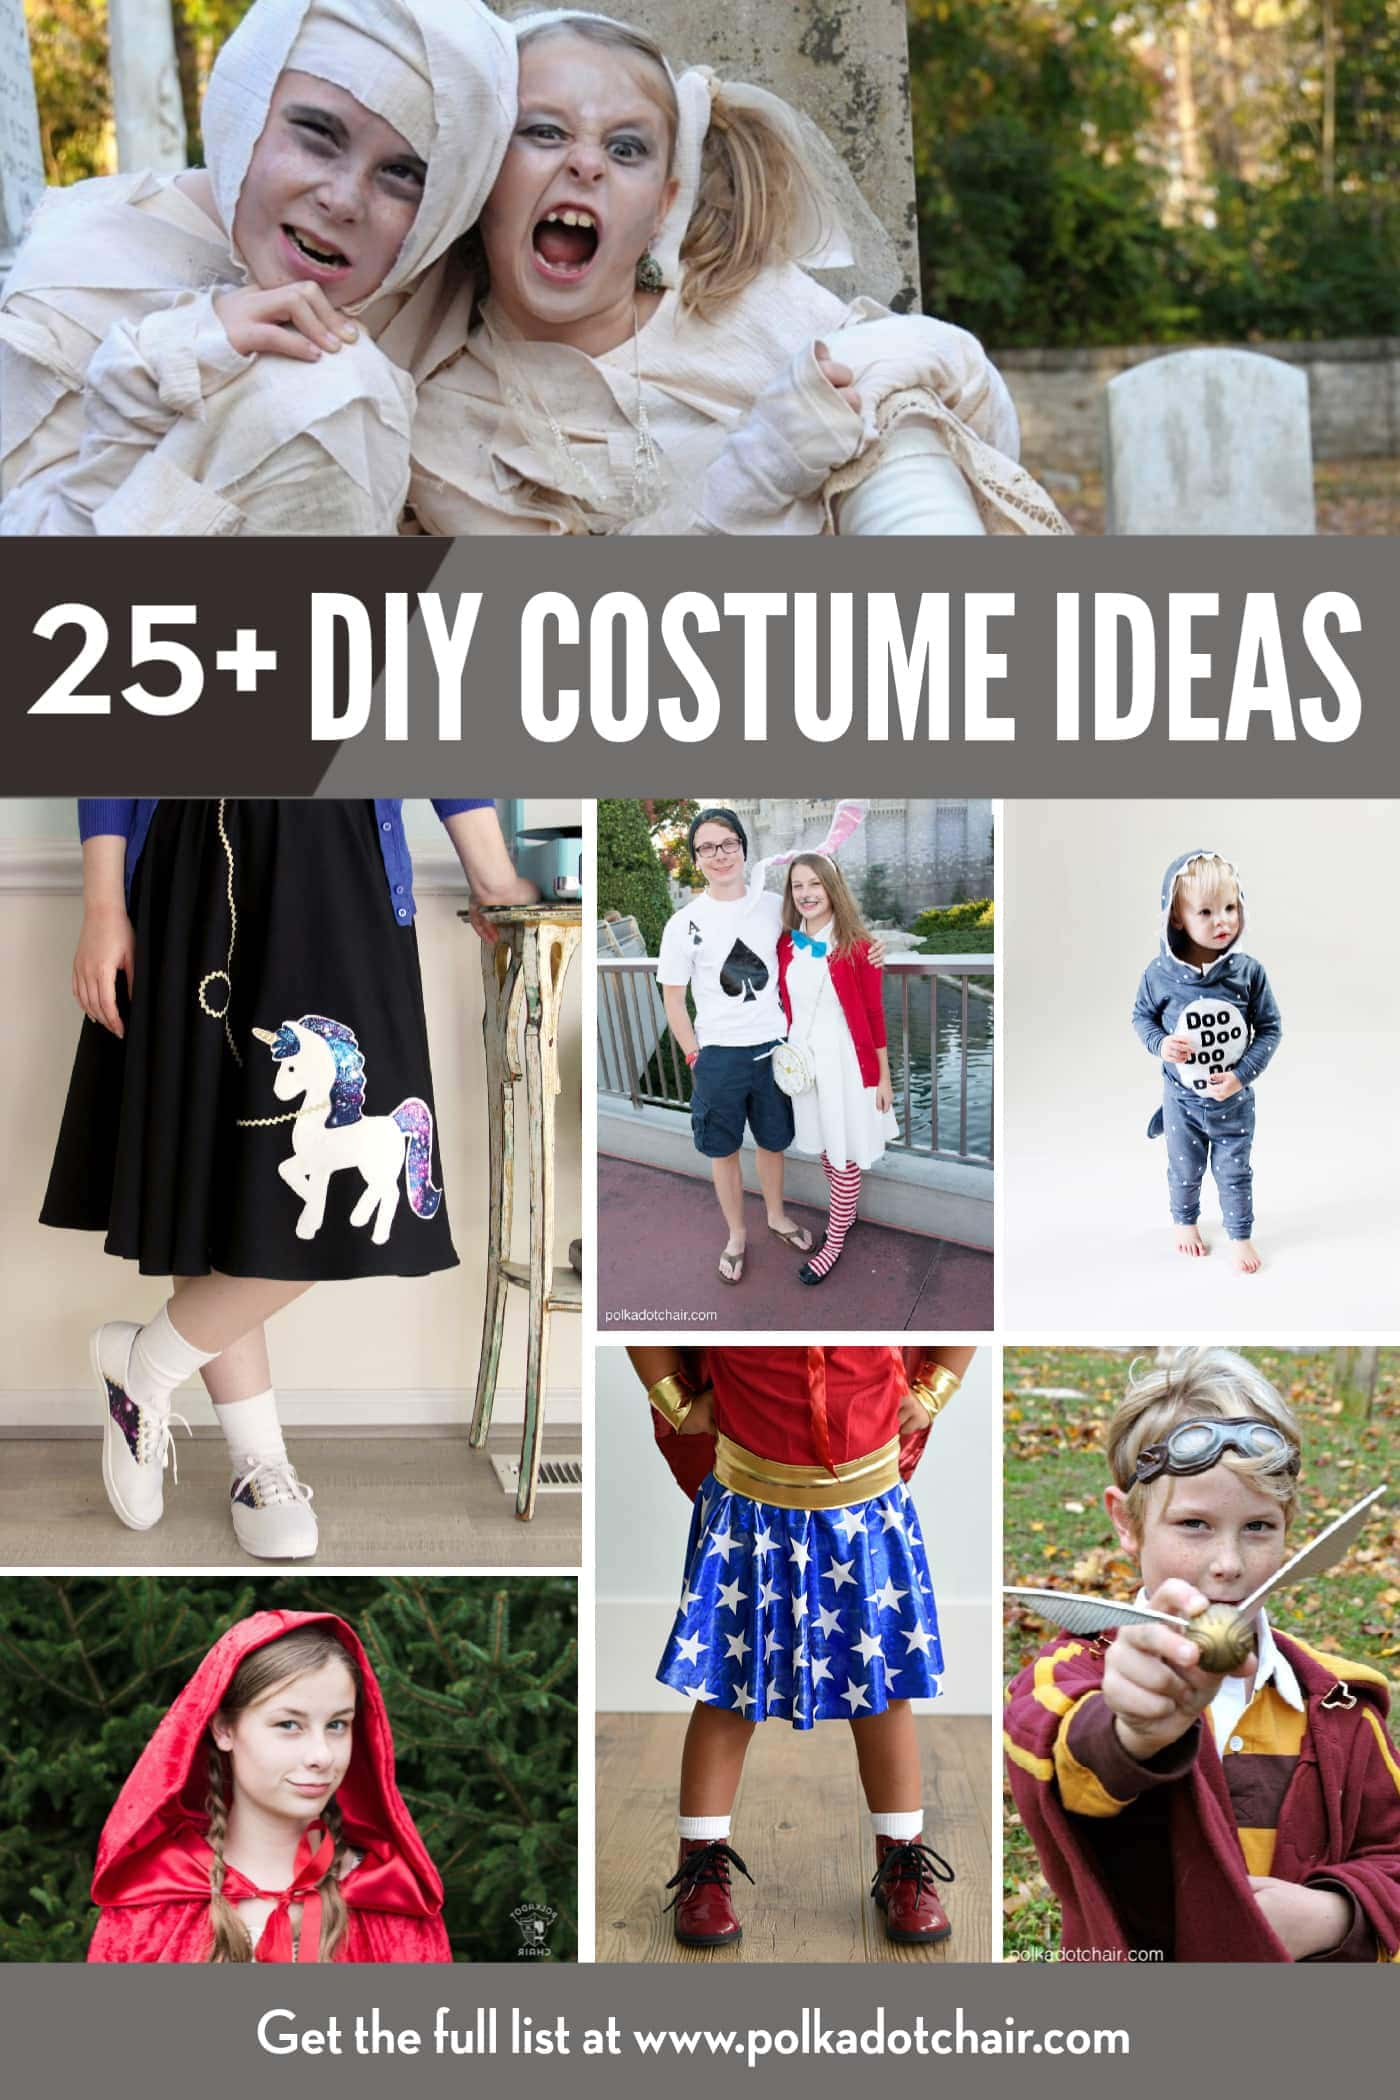 25 Costumes For Kids That You Can Easily Make Yourself Polka Dot Chair